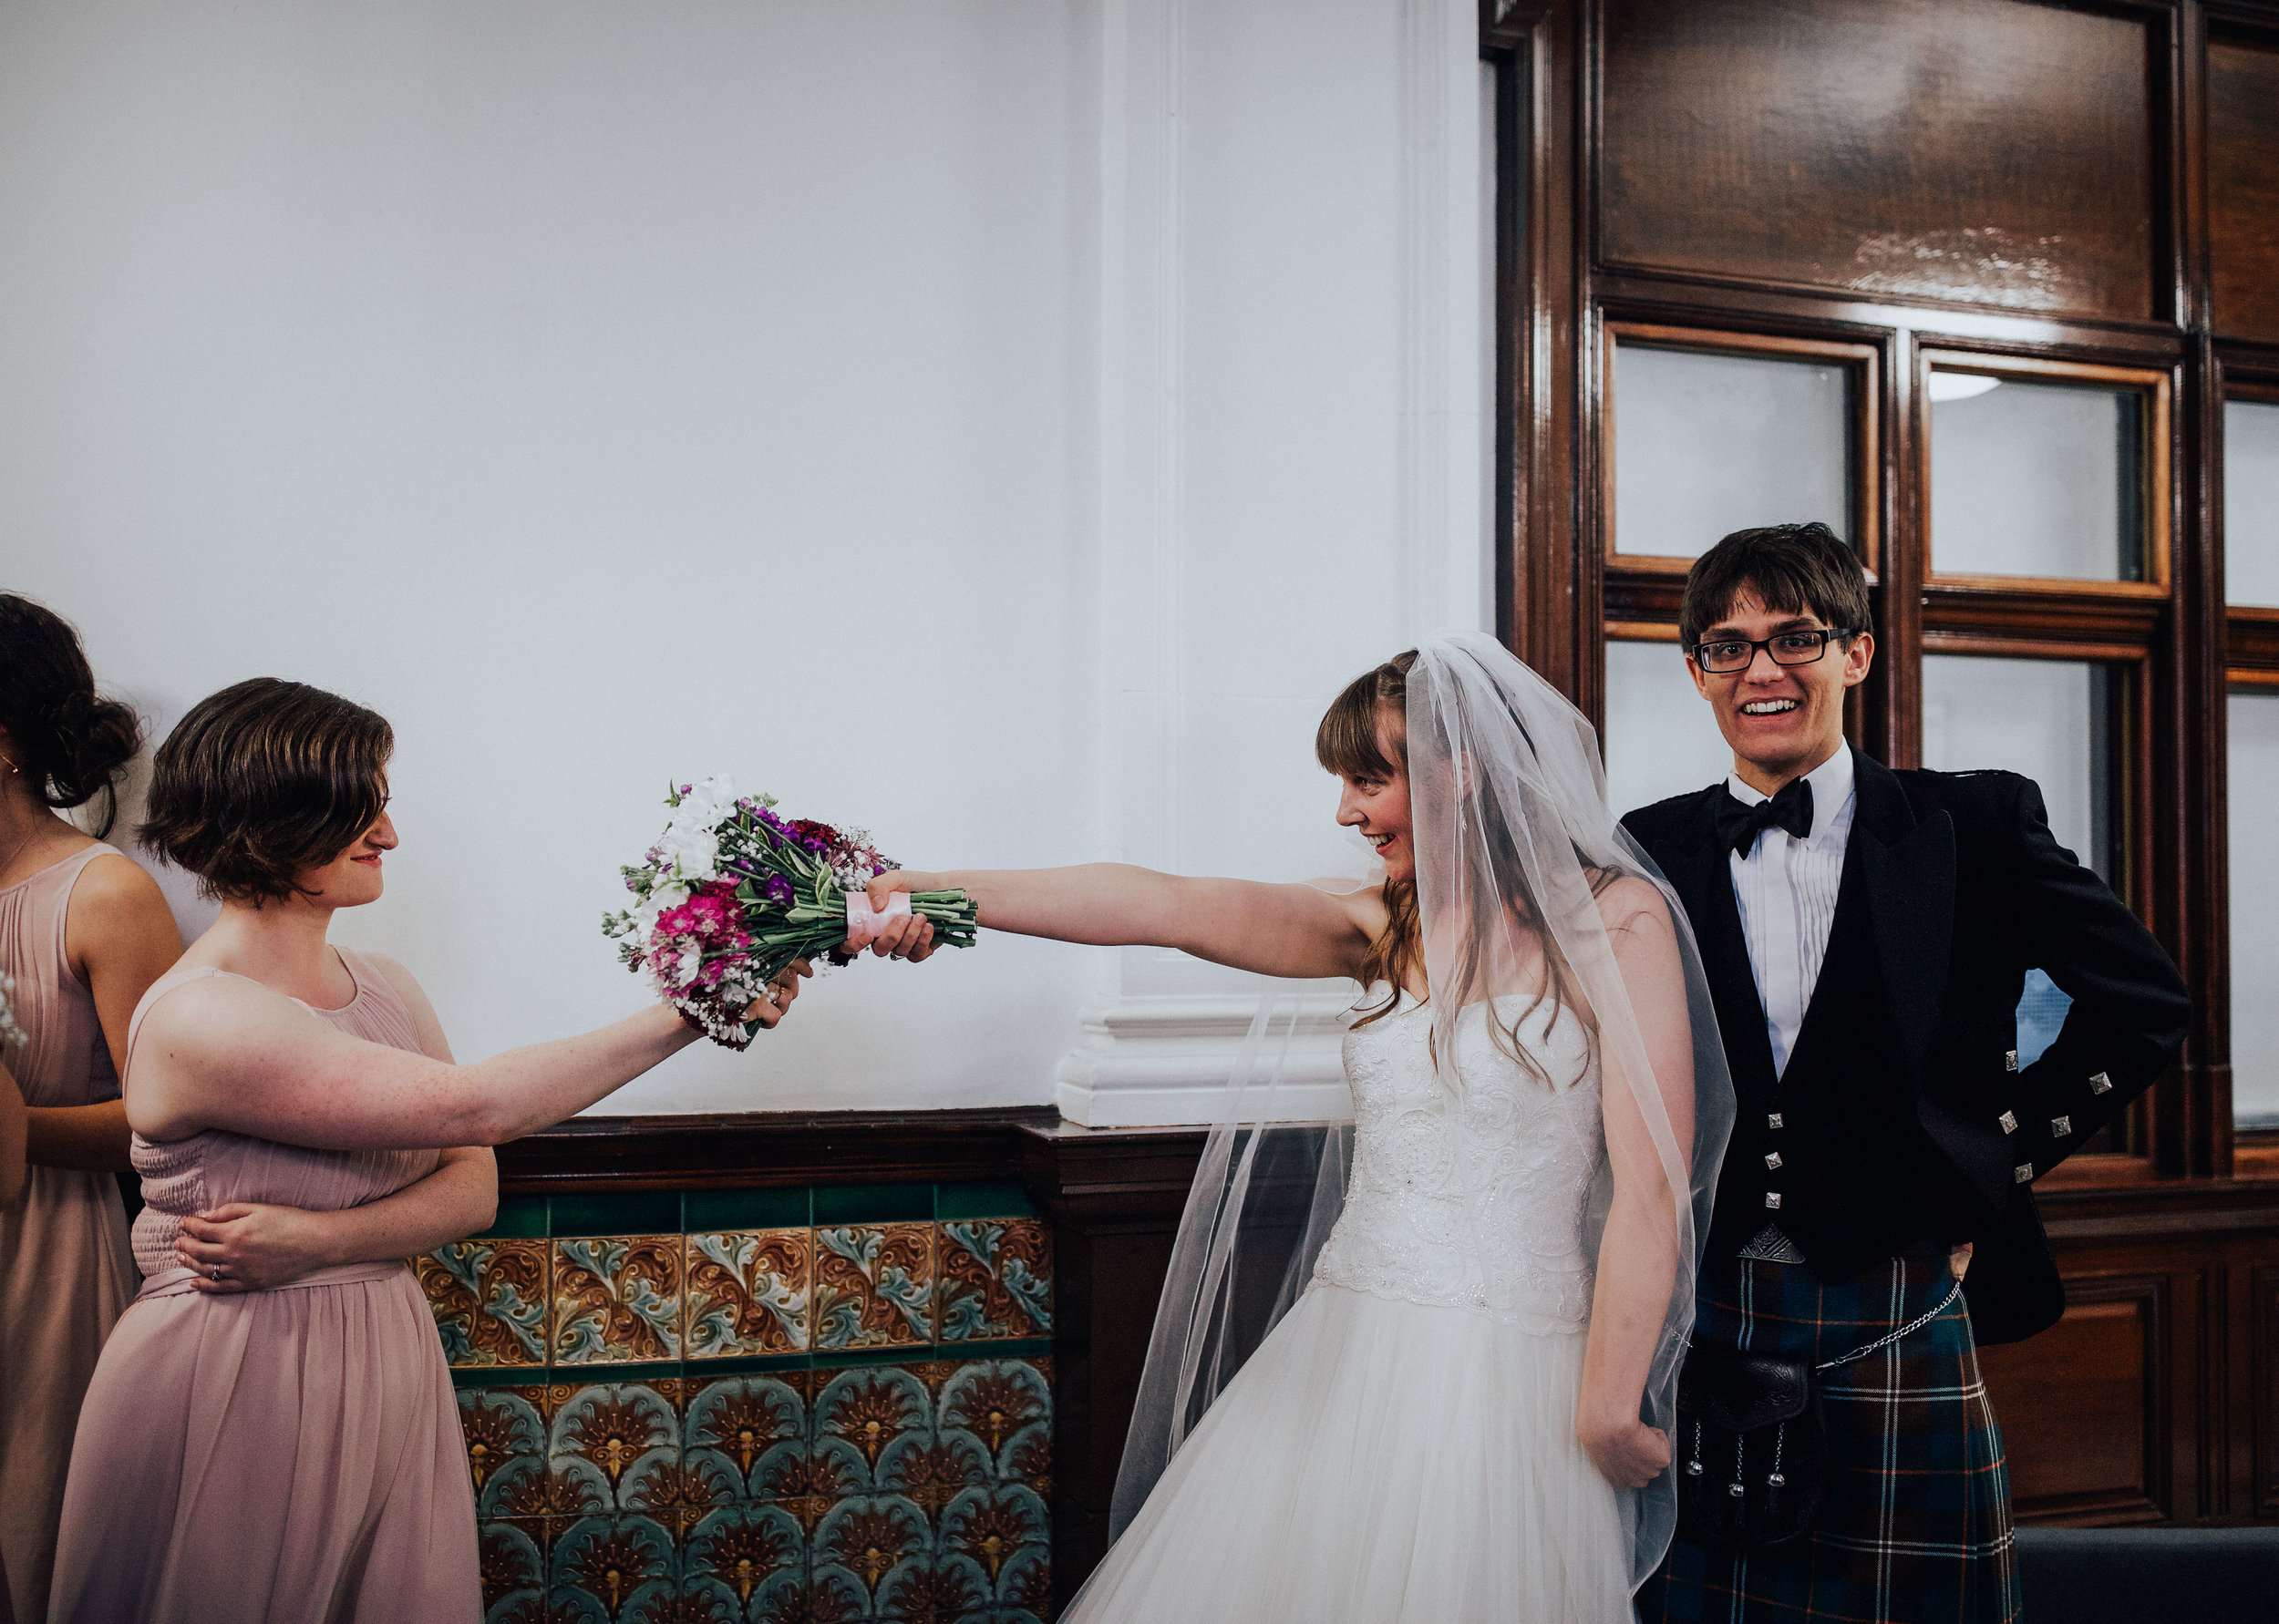 ALTERNATIVE_GLASGOW_CITY_WEDDING_PJ_PHILLIPS_PHOTOGRAPHY_WEDDING_PHOTOGRAPHY_59.jpg